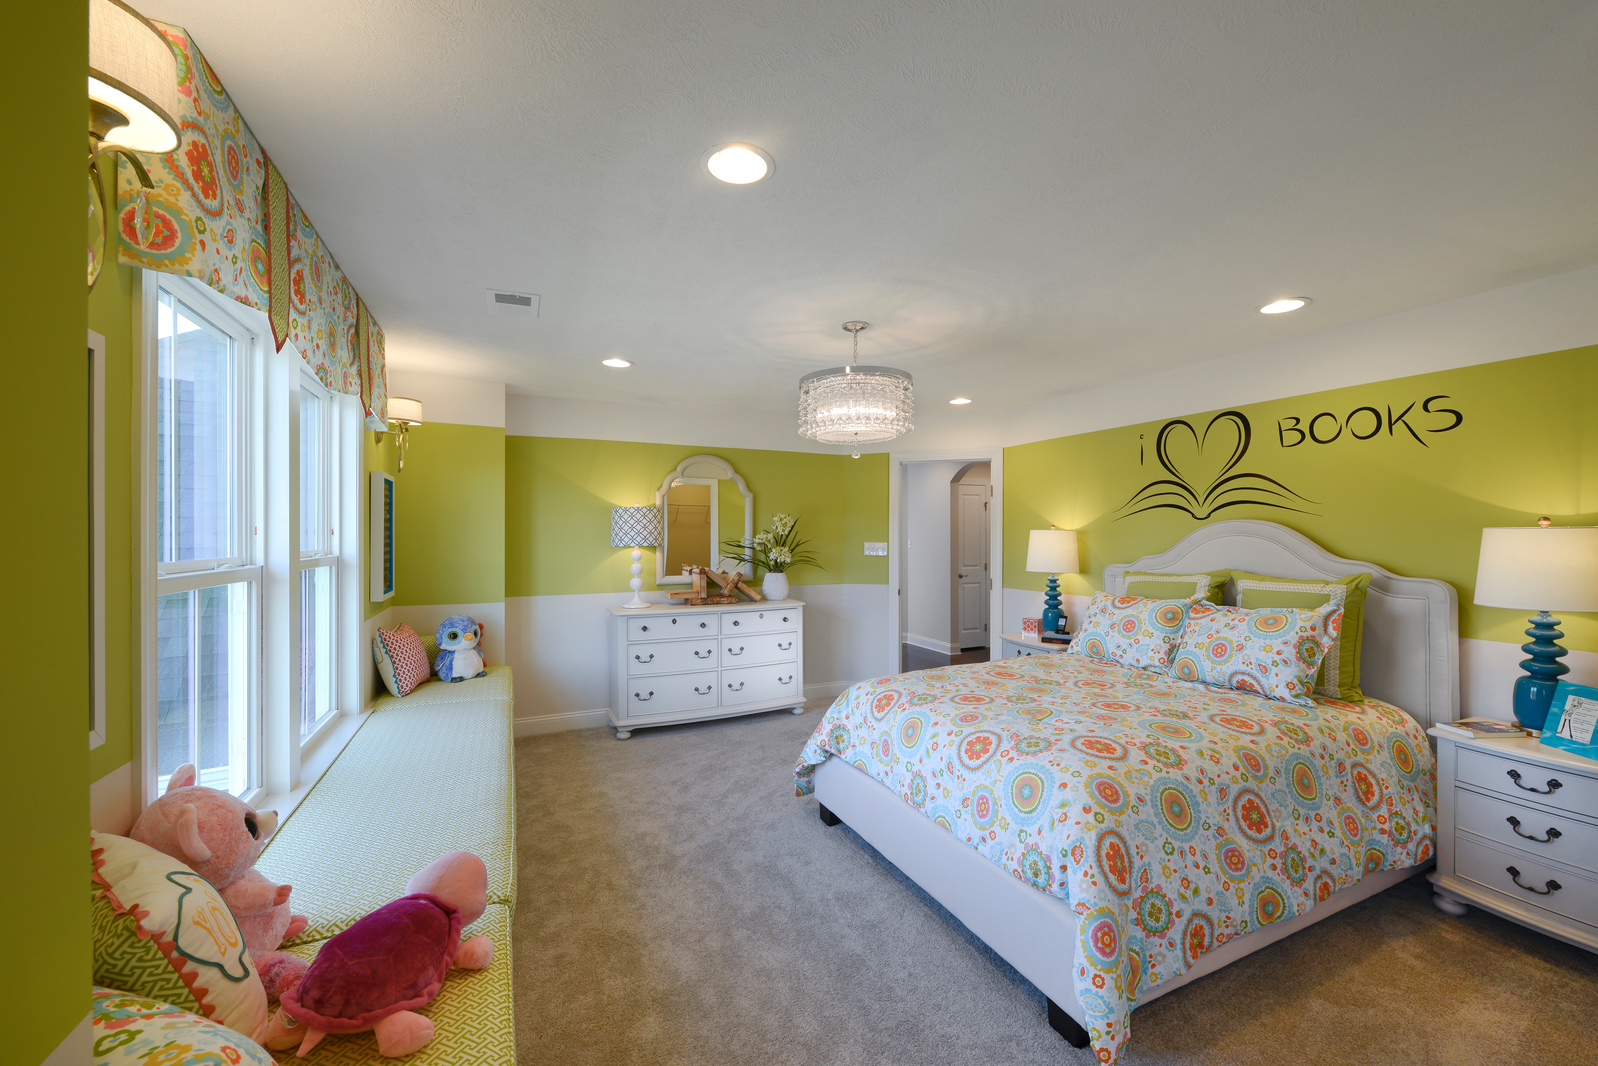 New Homes For Sale At Ballerina Court In Victor Ny Within The Victor Central School District